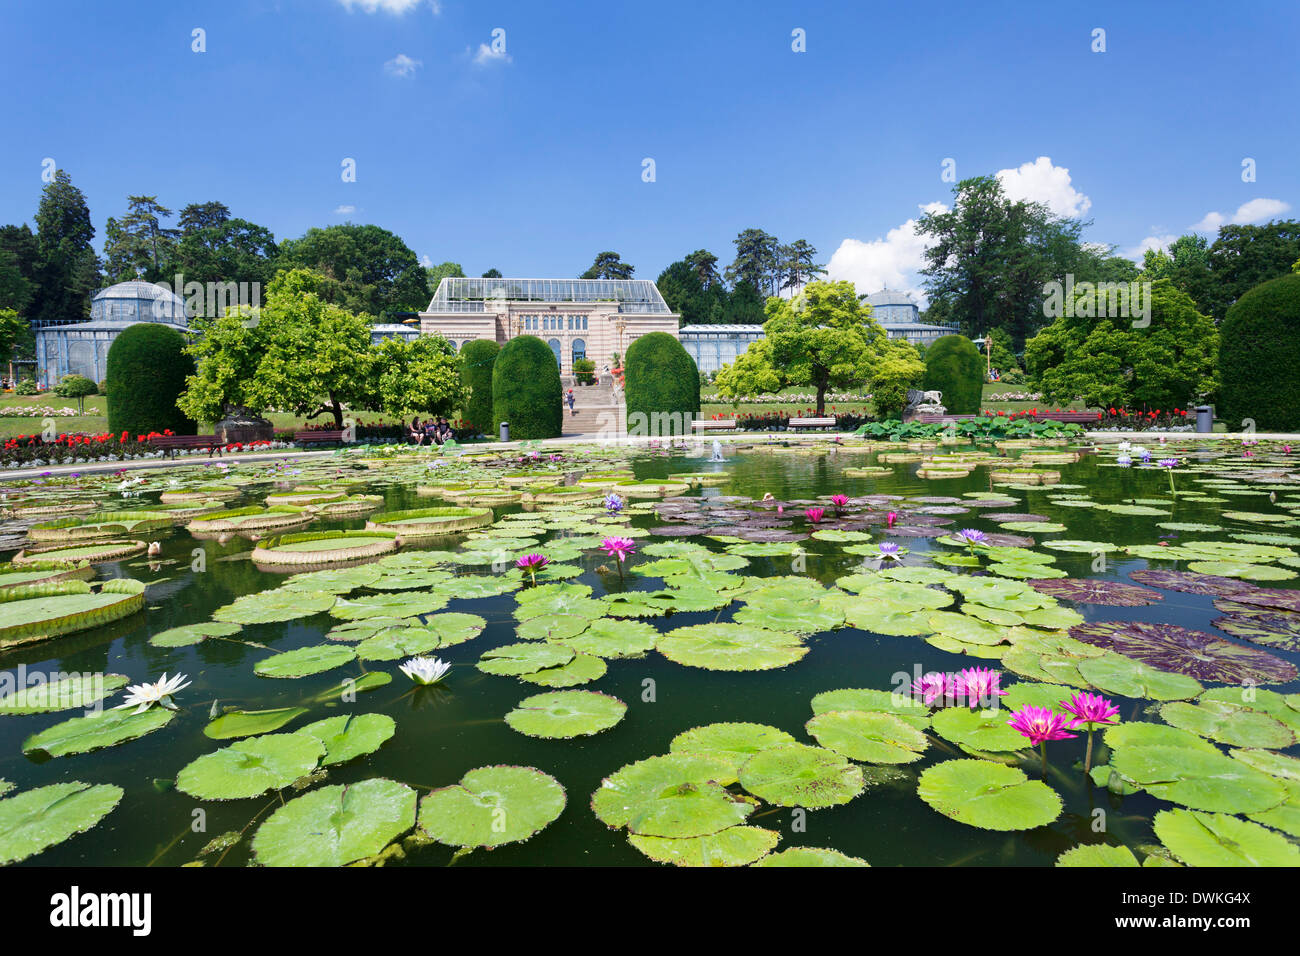 moorish garden with water lilies genus nymphaea wilhelma zoo and stock photo 67427274 alamy. Black Bedroom Furniture Sets. Home Design Ideas